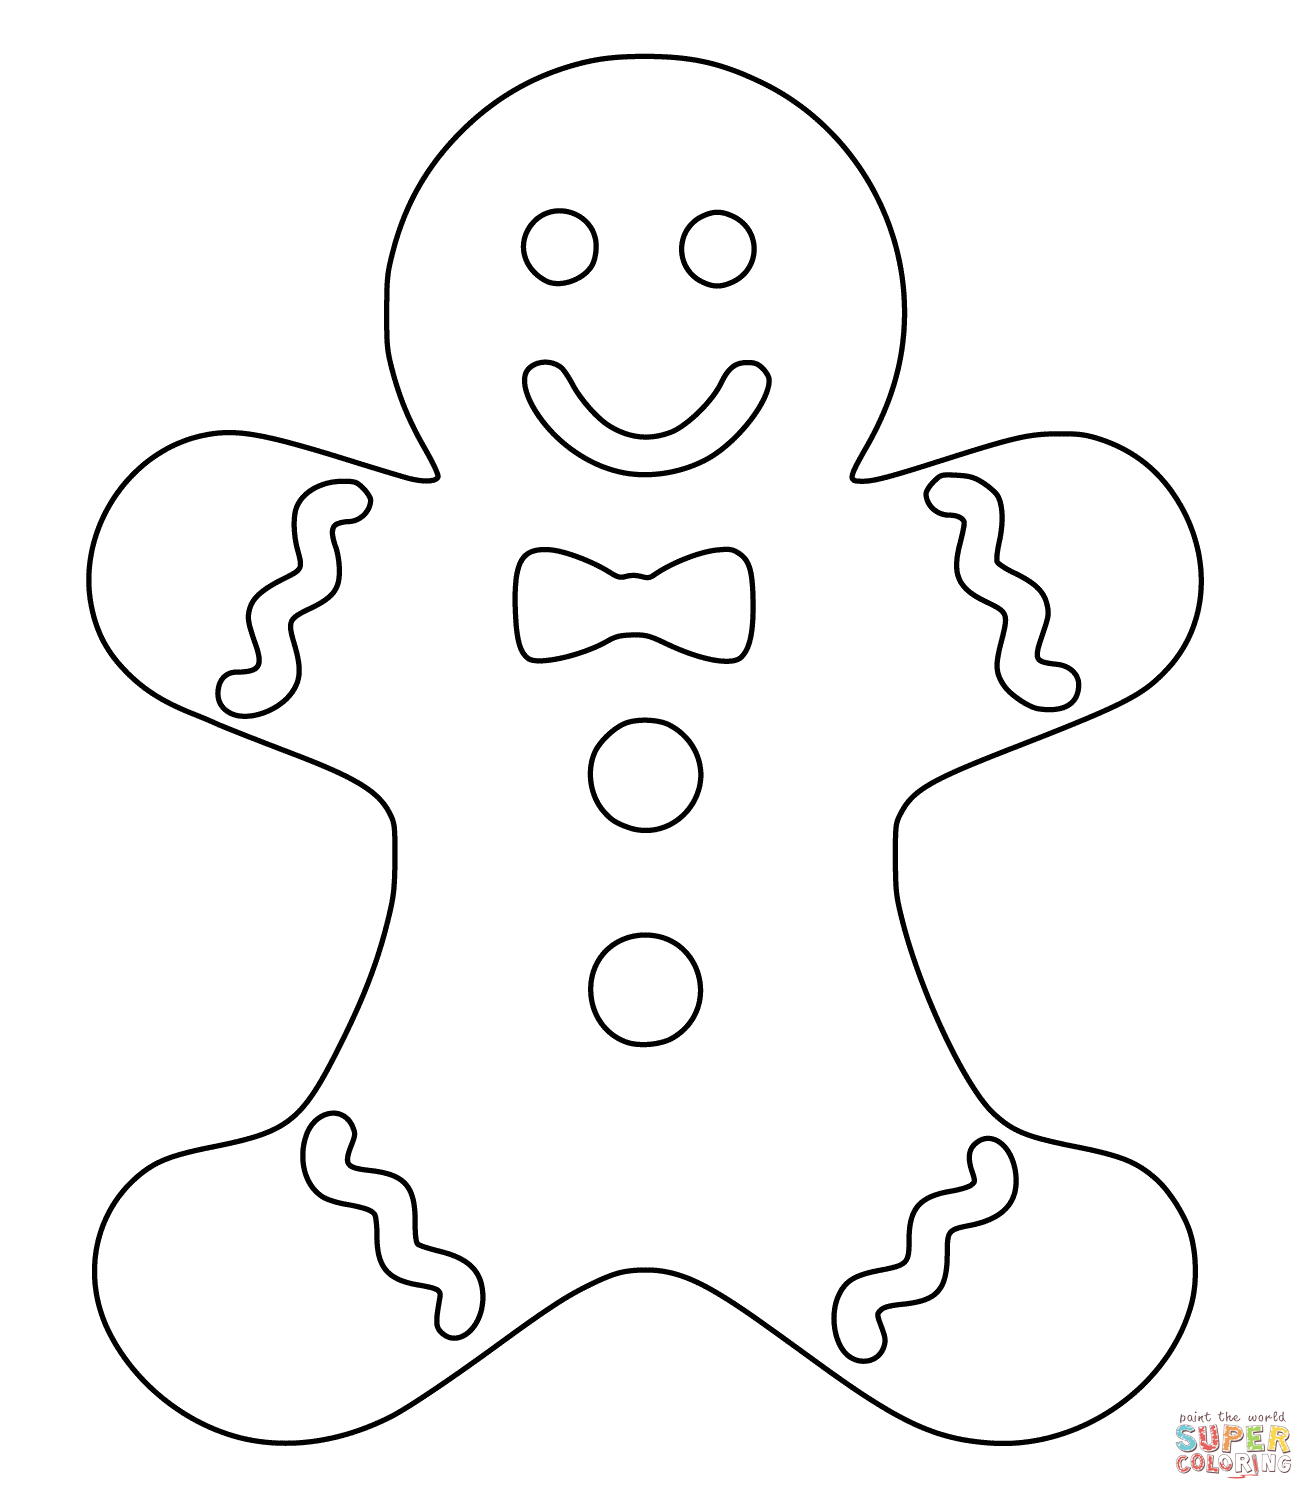 Coloring Pages : Christmas Gingerbread Man Coloring Page Splendi.